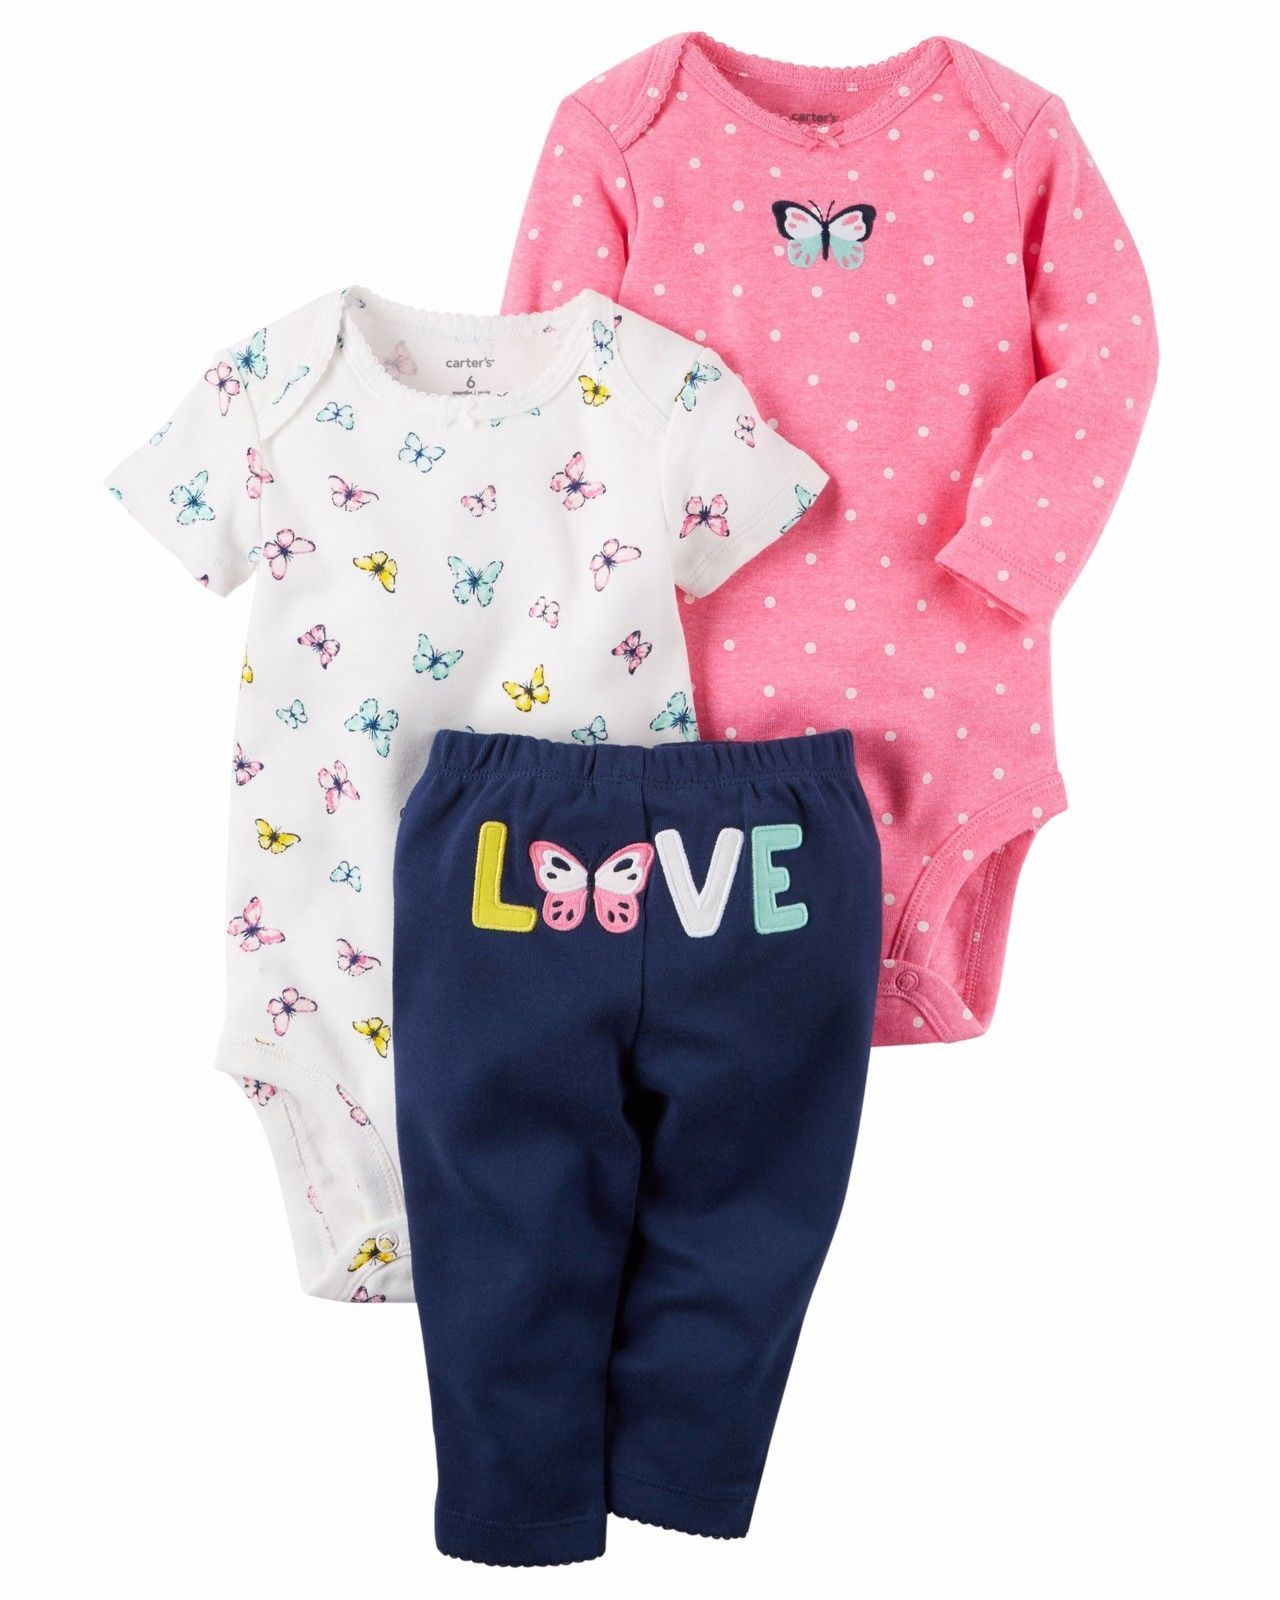 a9a7e0b47 Other Baby and Toddler Clothing 1070: New Nwt Girls Carter S Preemie  Premature 3 Piece Butterfly Love Set -> BUY IT NOW ONLY: $14.99 on #eBay # other ...